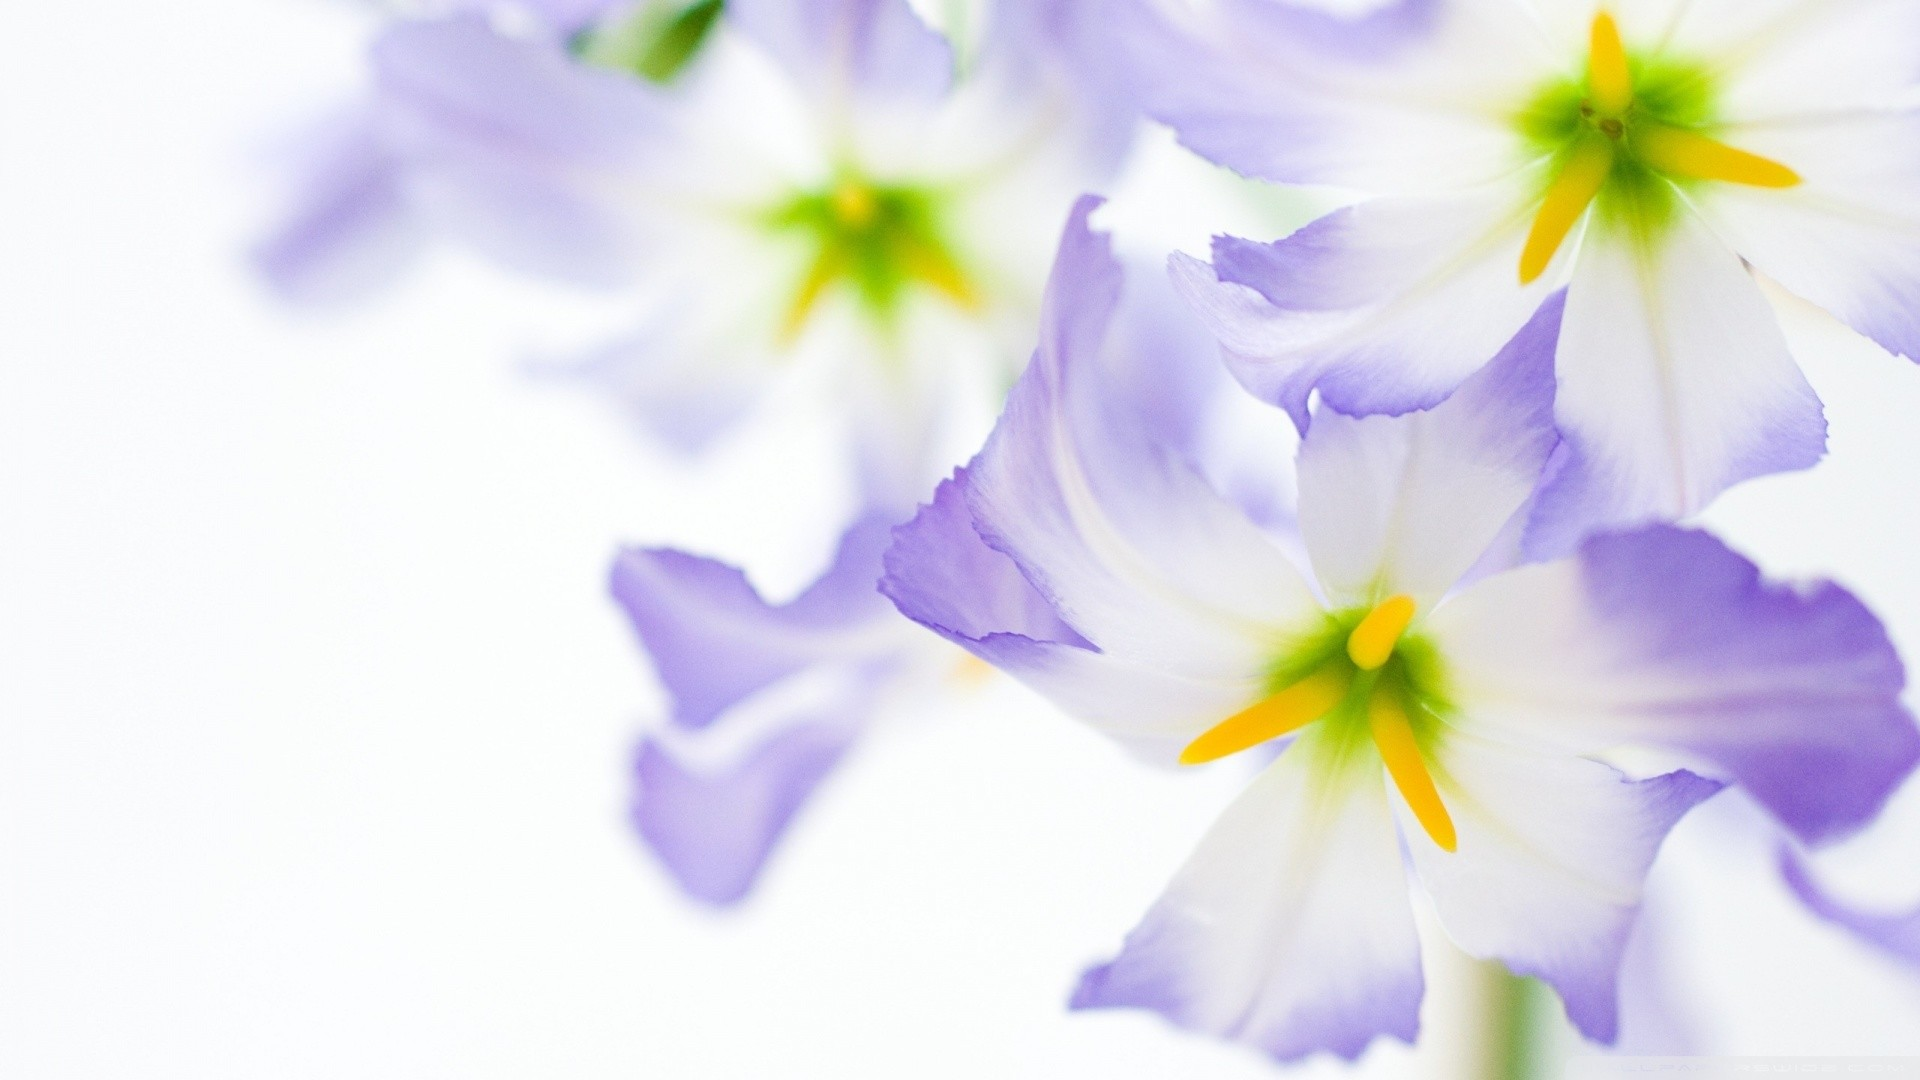 Res: 1920x1080, 7. flowers-background-wallpaper6-600x338